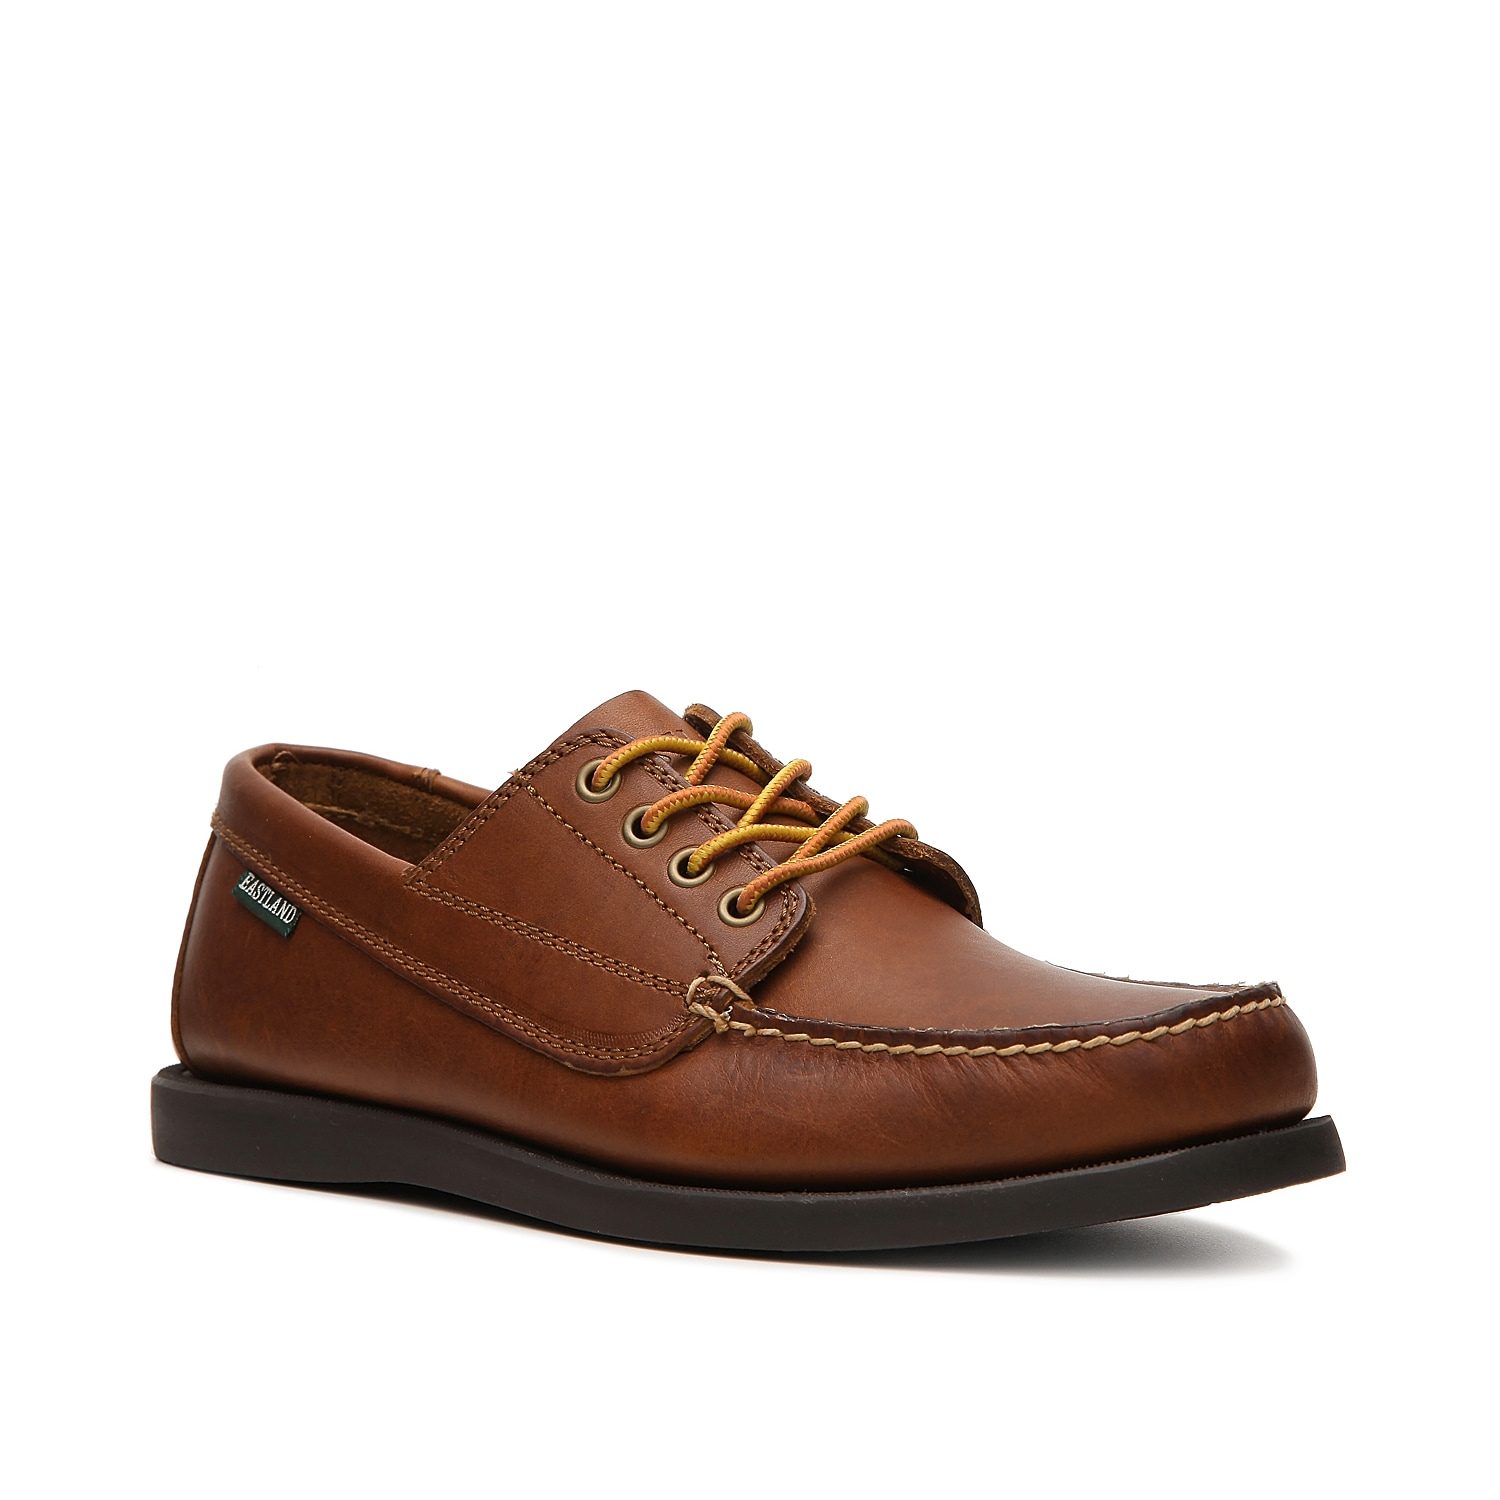 The Falmouth boat shoe from Eastland is an iconic style with it\\\'s leather deck shoe design and all day comfort.